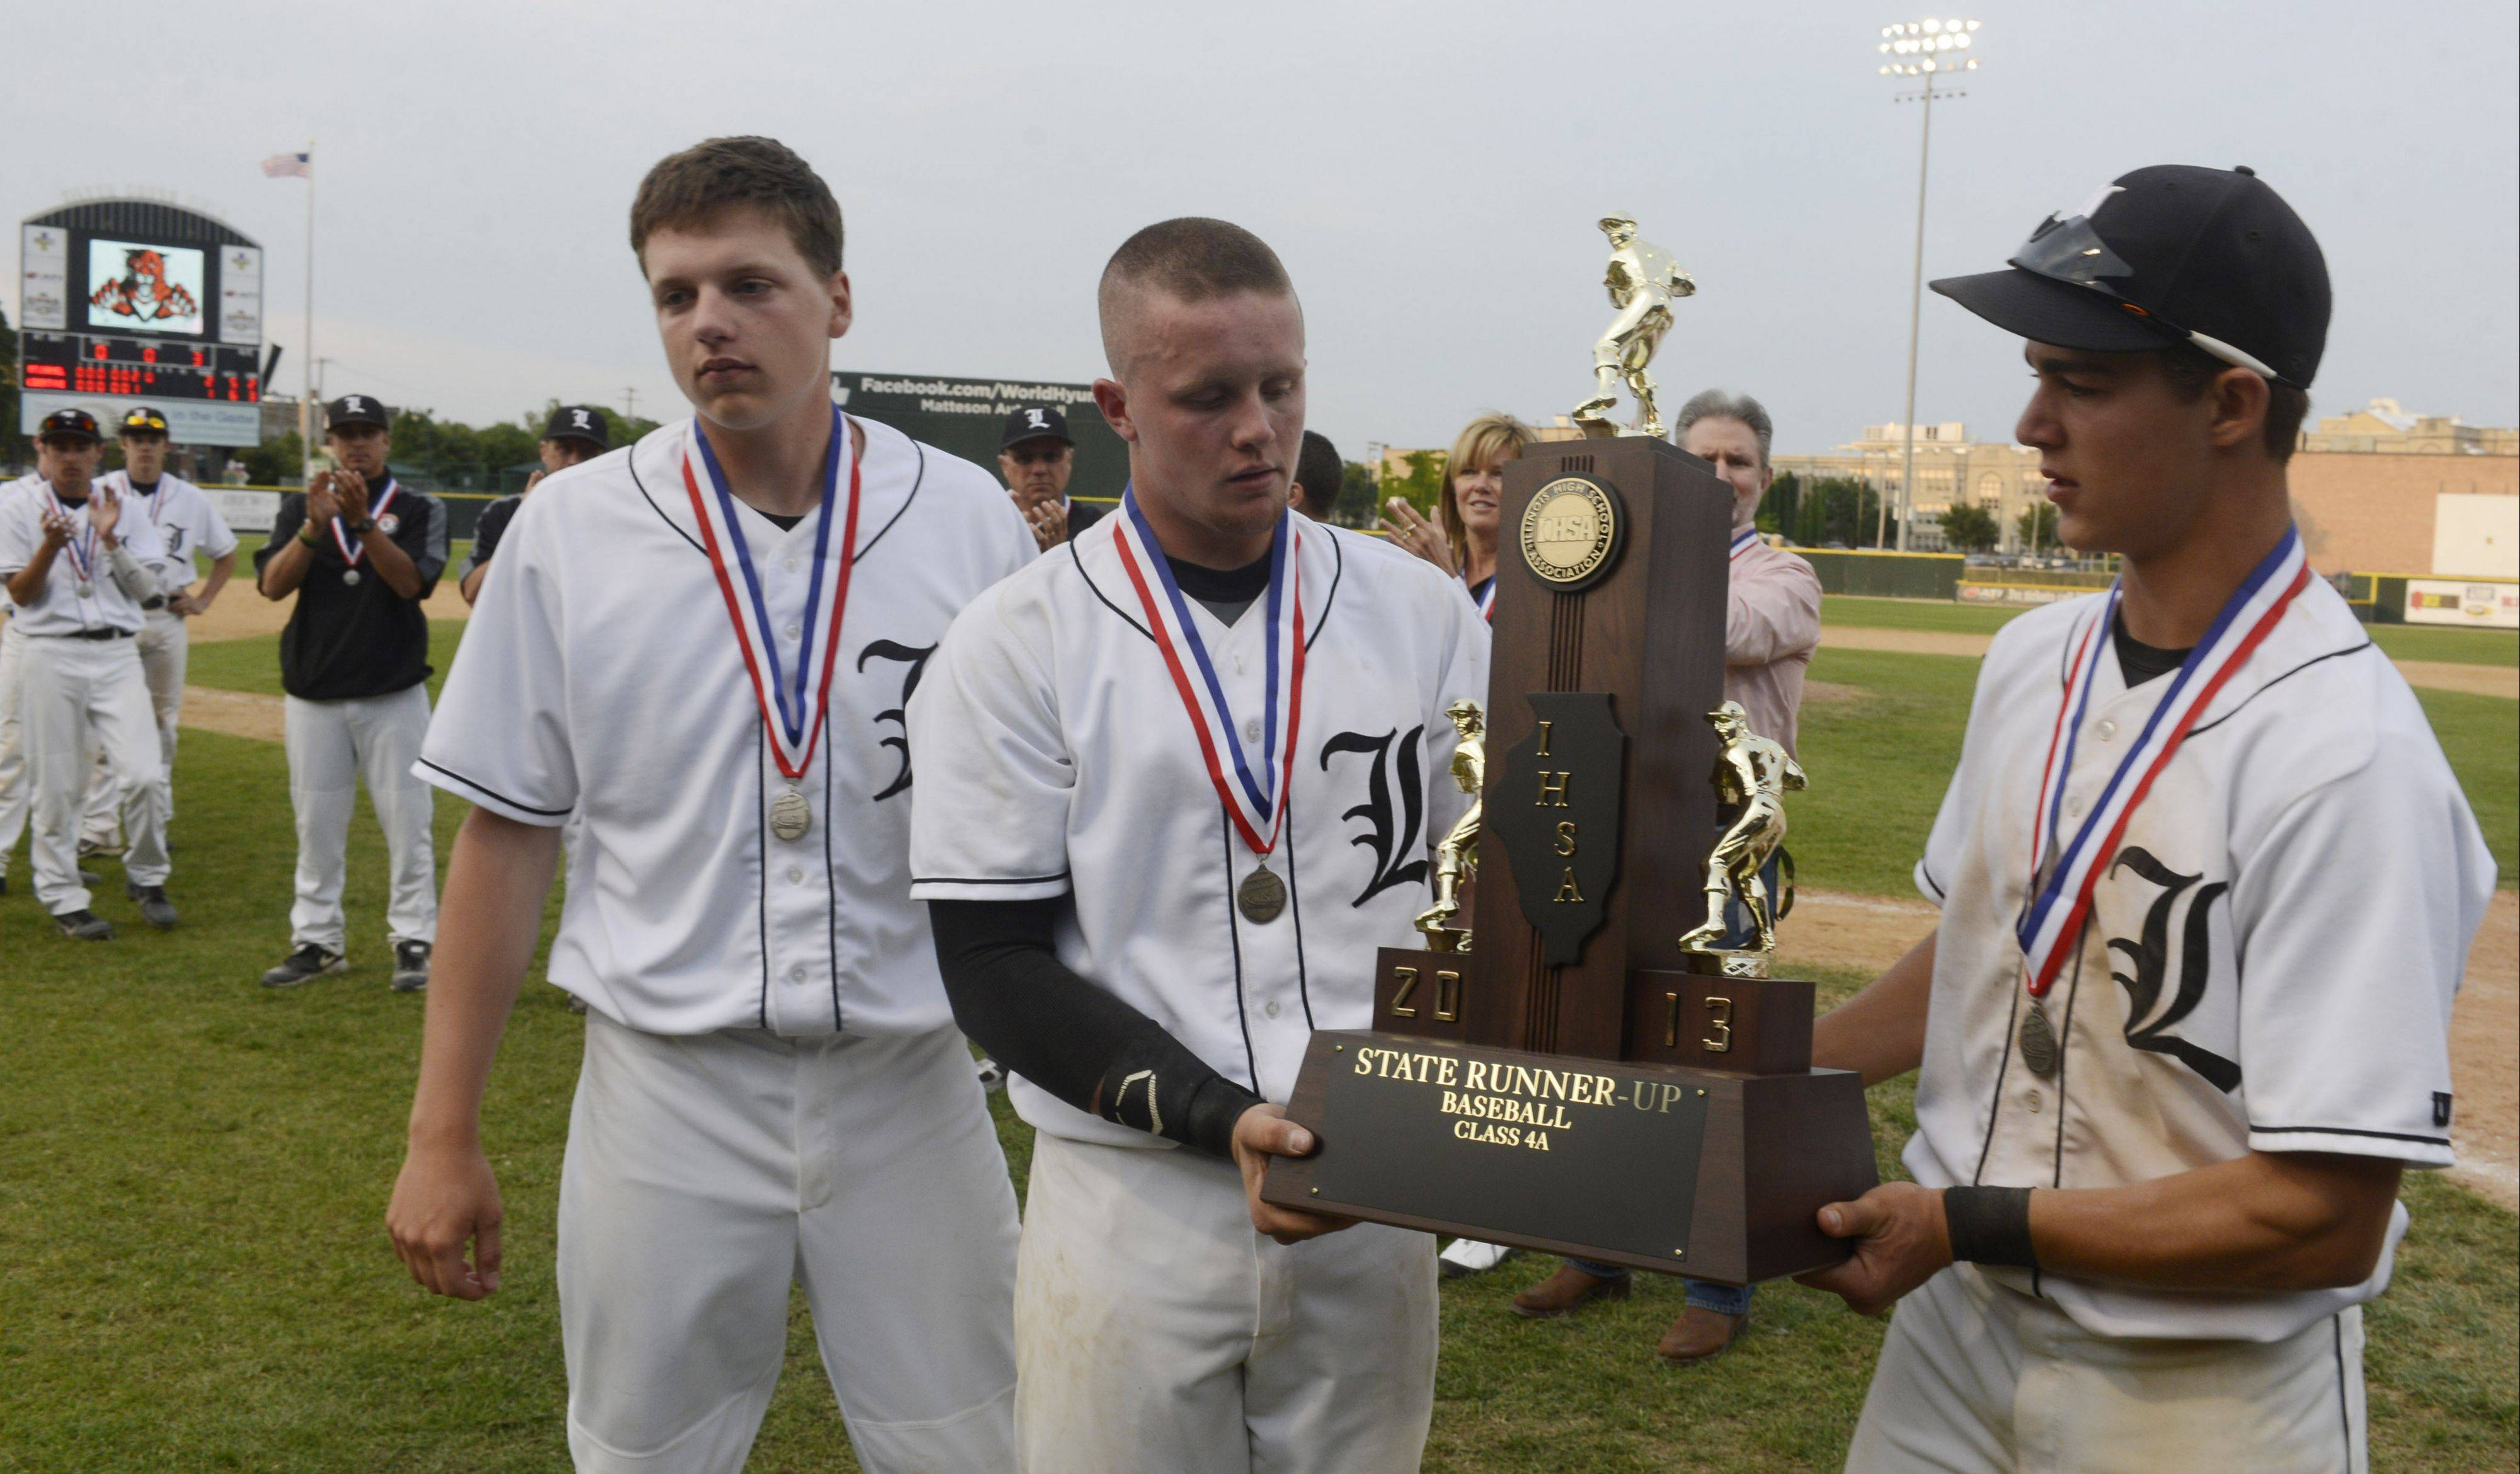 Left to right, Libertyville players Matt Vogt, Evan Skoug and Justin Guarnaccio hold the second-place trophy following the Wildcats� 2-1 loss to Mt. Carmel in the Class 4A state baseball championship game at Silver Cross Field in Joliet on Saturday.